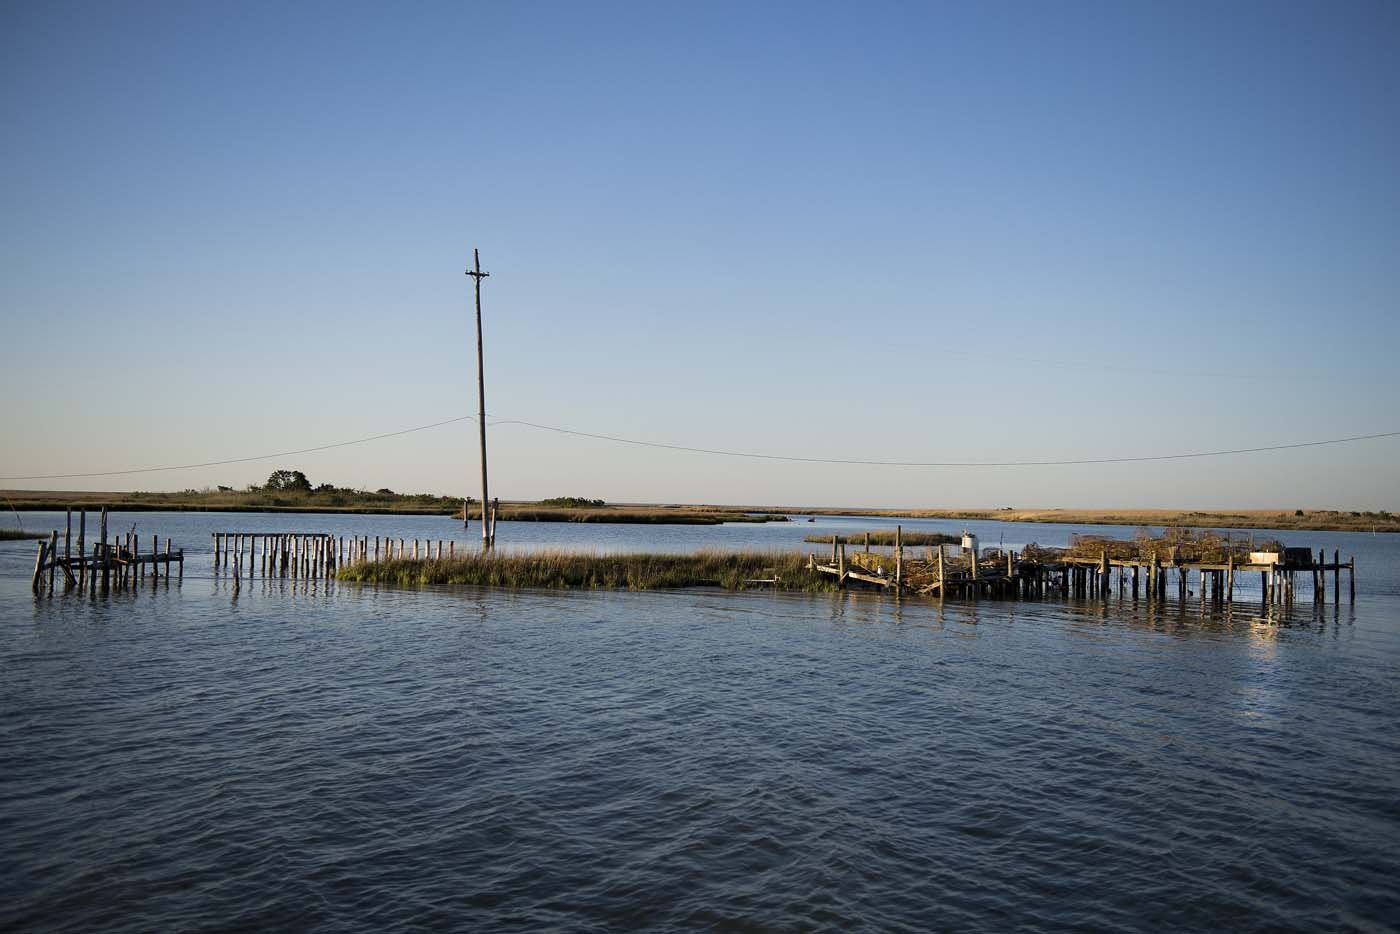 Supports jet out of the water where crab shanties used to stand on a patch of land now surrounded by water in Tangier, Virginia, May 15, 2017, where climate change and rising sea levels threaten the inhabitants of the slowly sinking island. Now measuring 1.2 square miles, Tangier Island has lost two-thirds of its landmass since 1850. If nothing is done to stop the erosion, it may disappear completely in the next 40 years. / AFP PHOTO / JIM WATSON